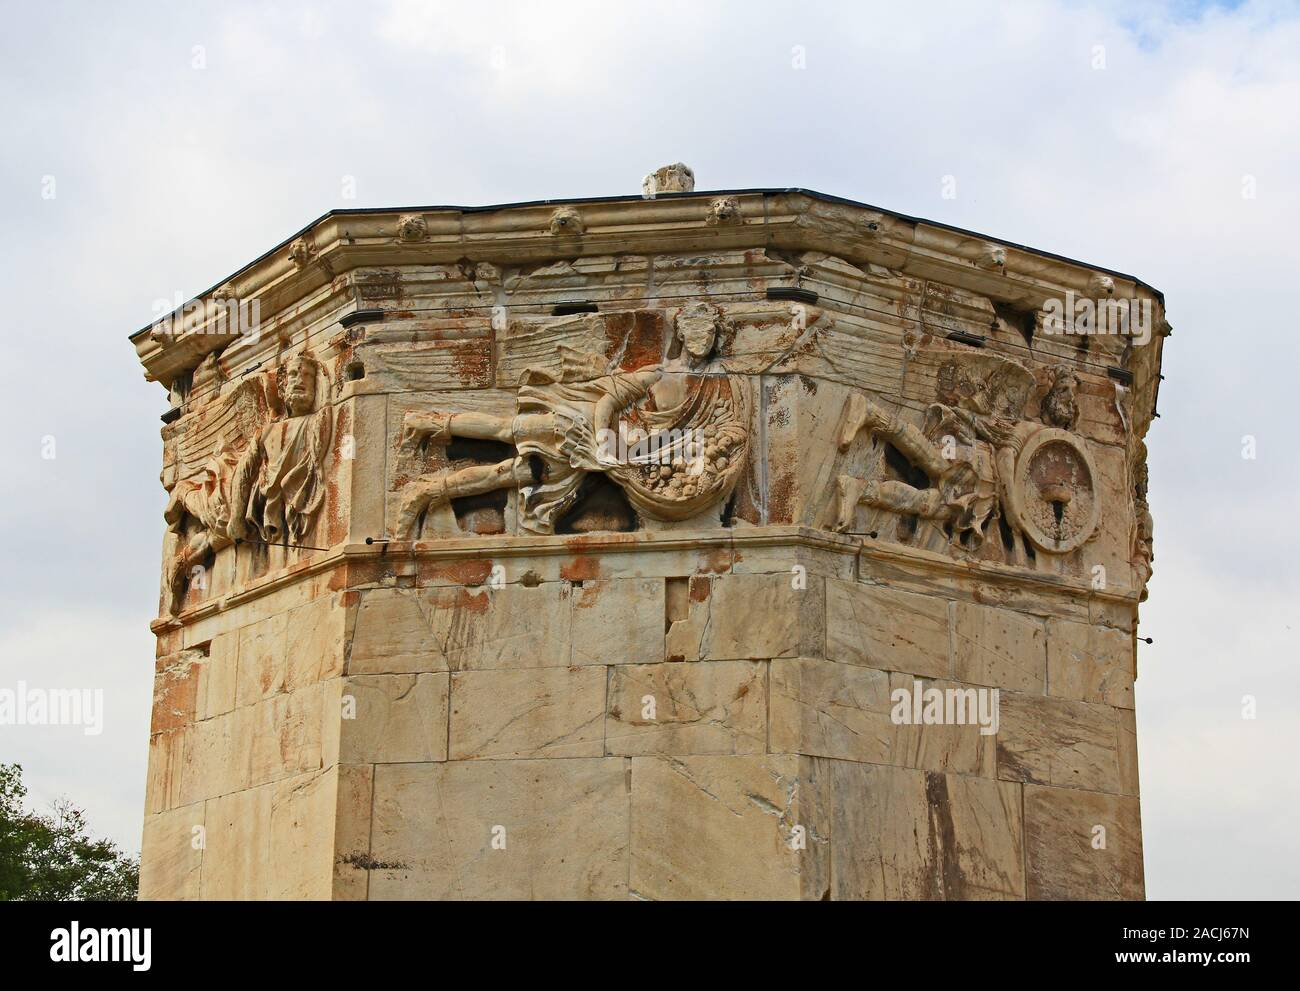 Carvings on the Tower of the Winds in Athens, Greece Stock Photo